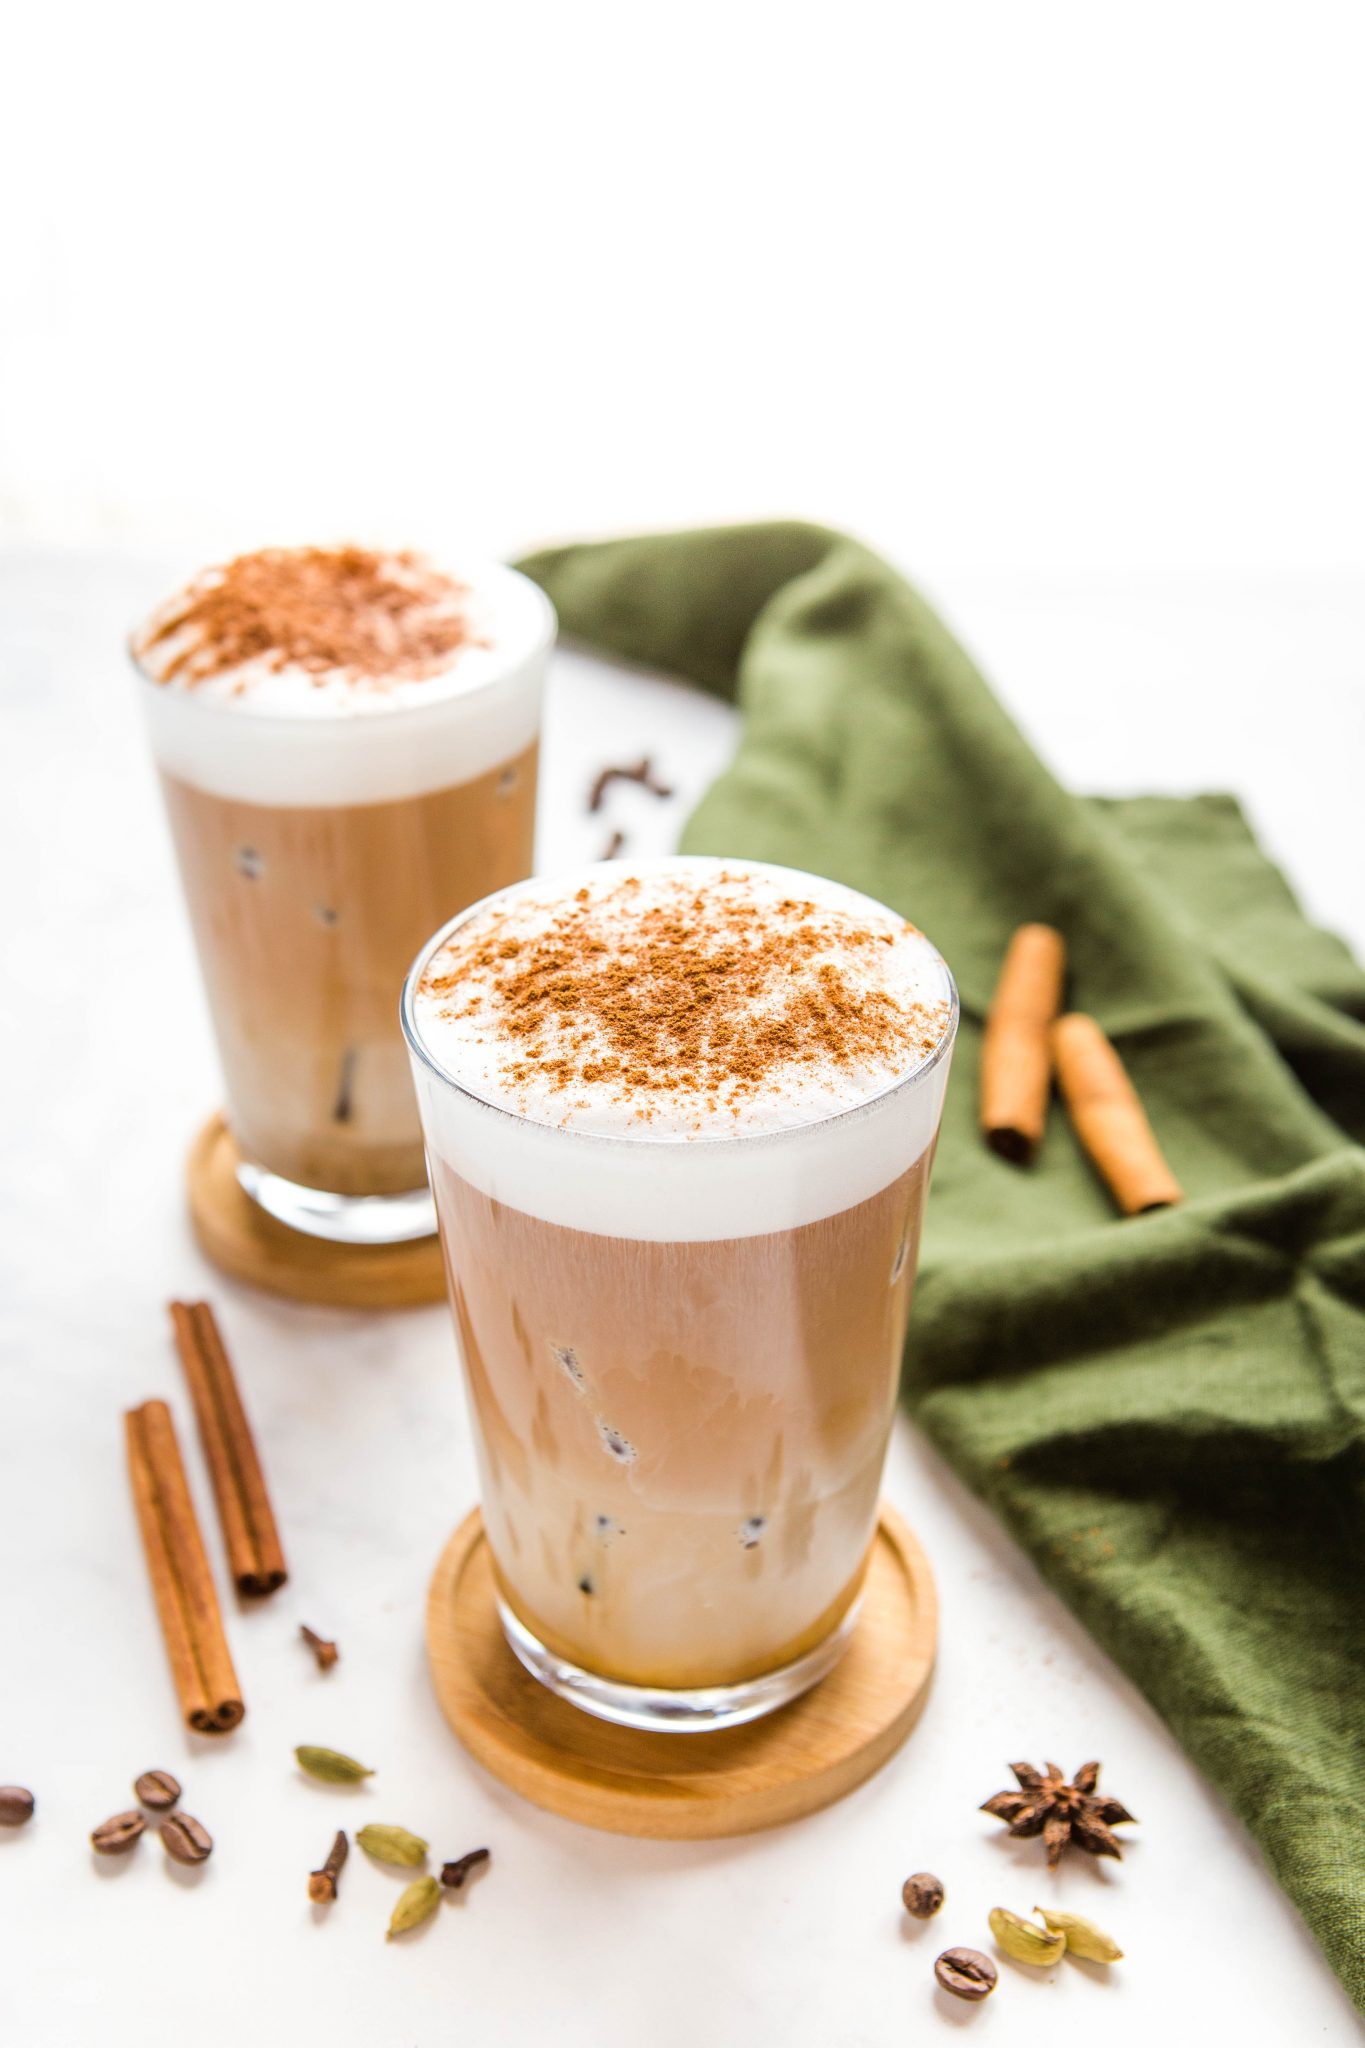 dirty chai latte in glass with foamed milk and cinnamon